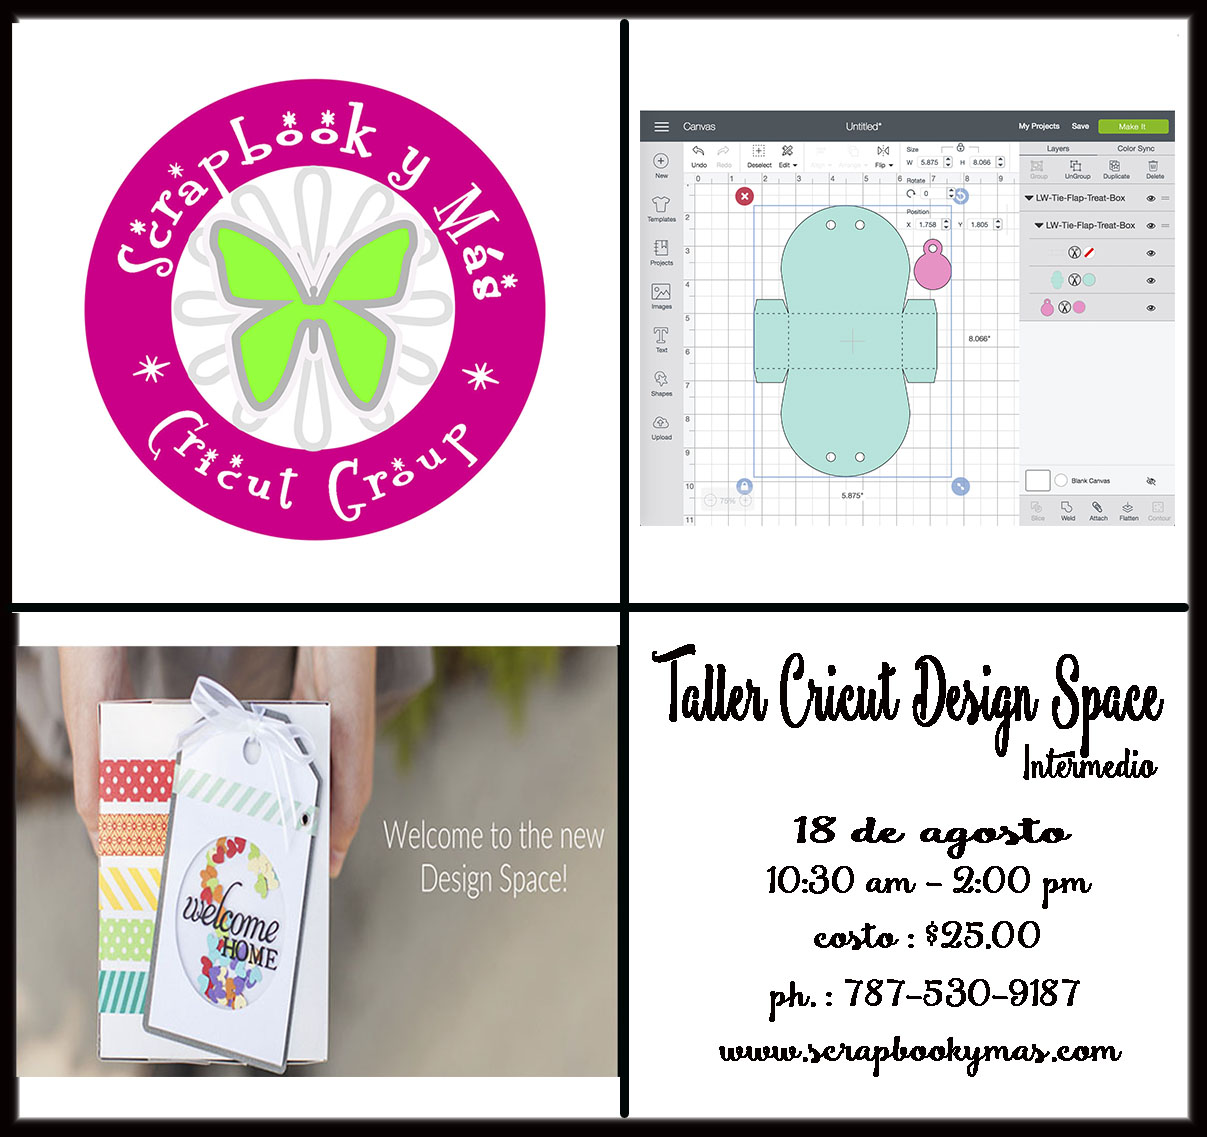 18 de agosto - Taller Cricut Design Space Intermedio